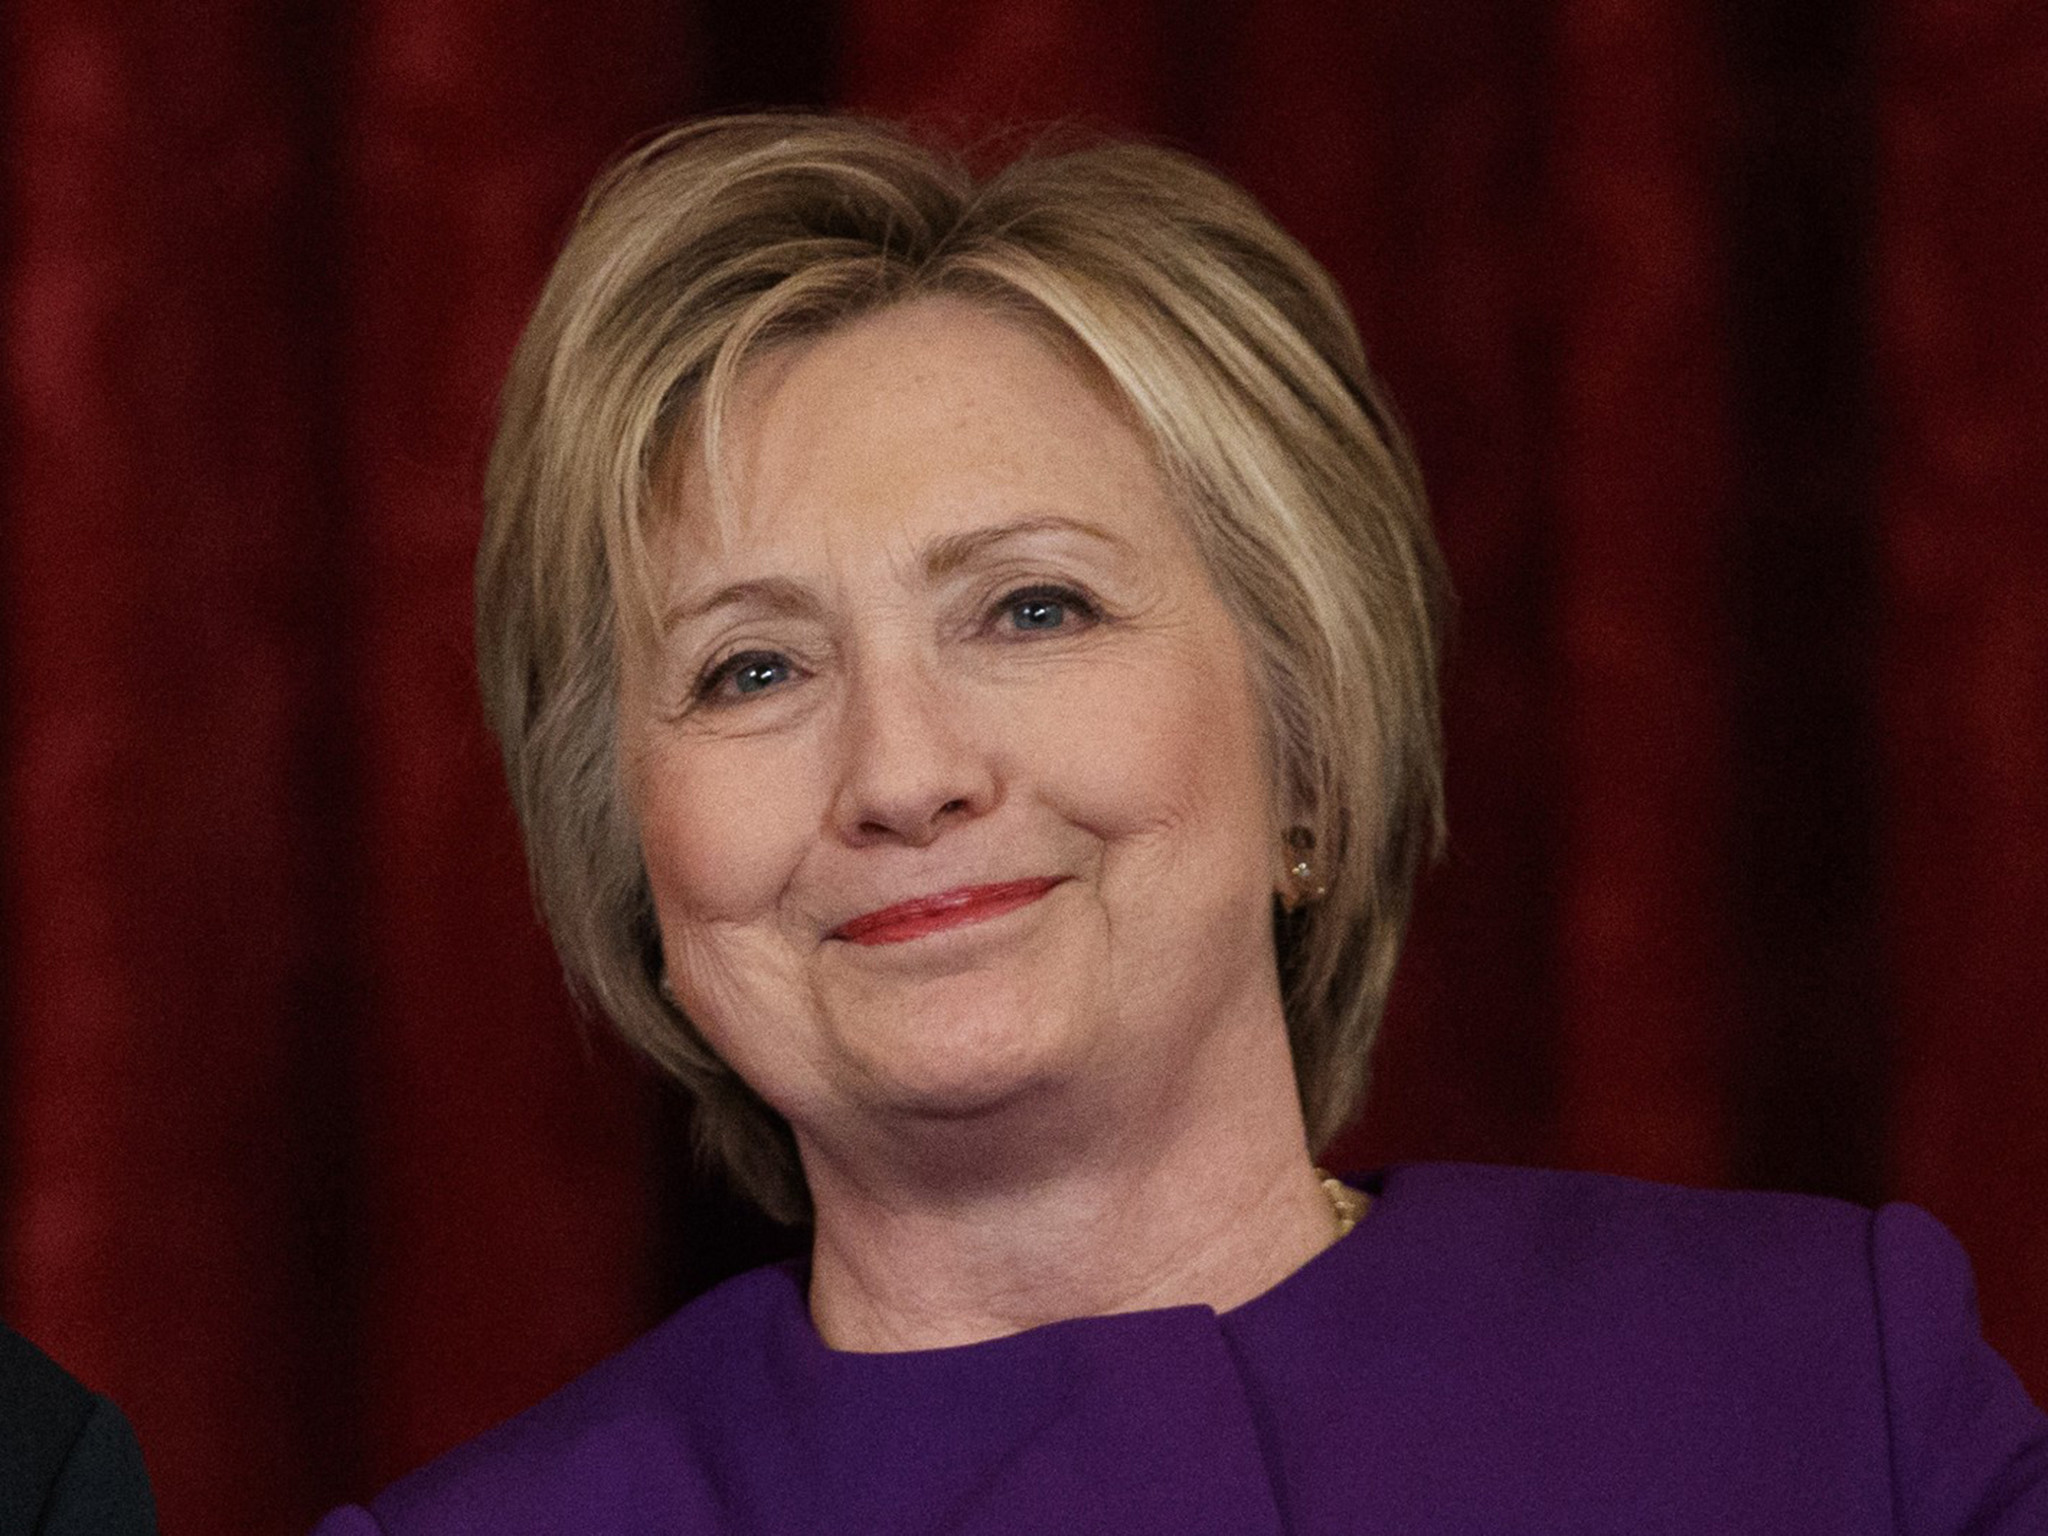 Hillary Clinton defies criticism in return to paid speech circuit after  election loss | The Independent